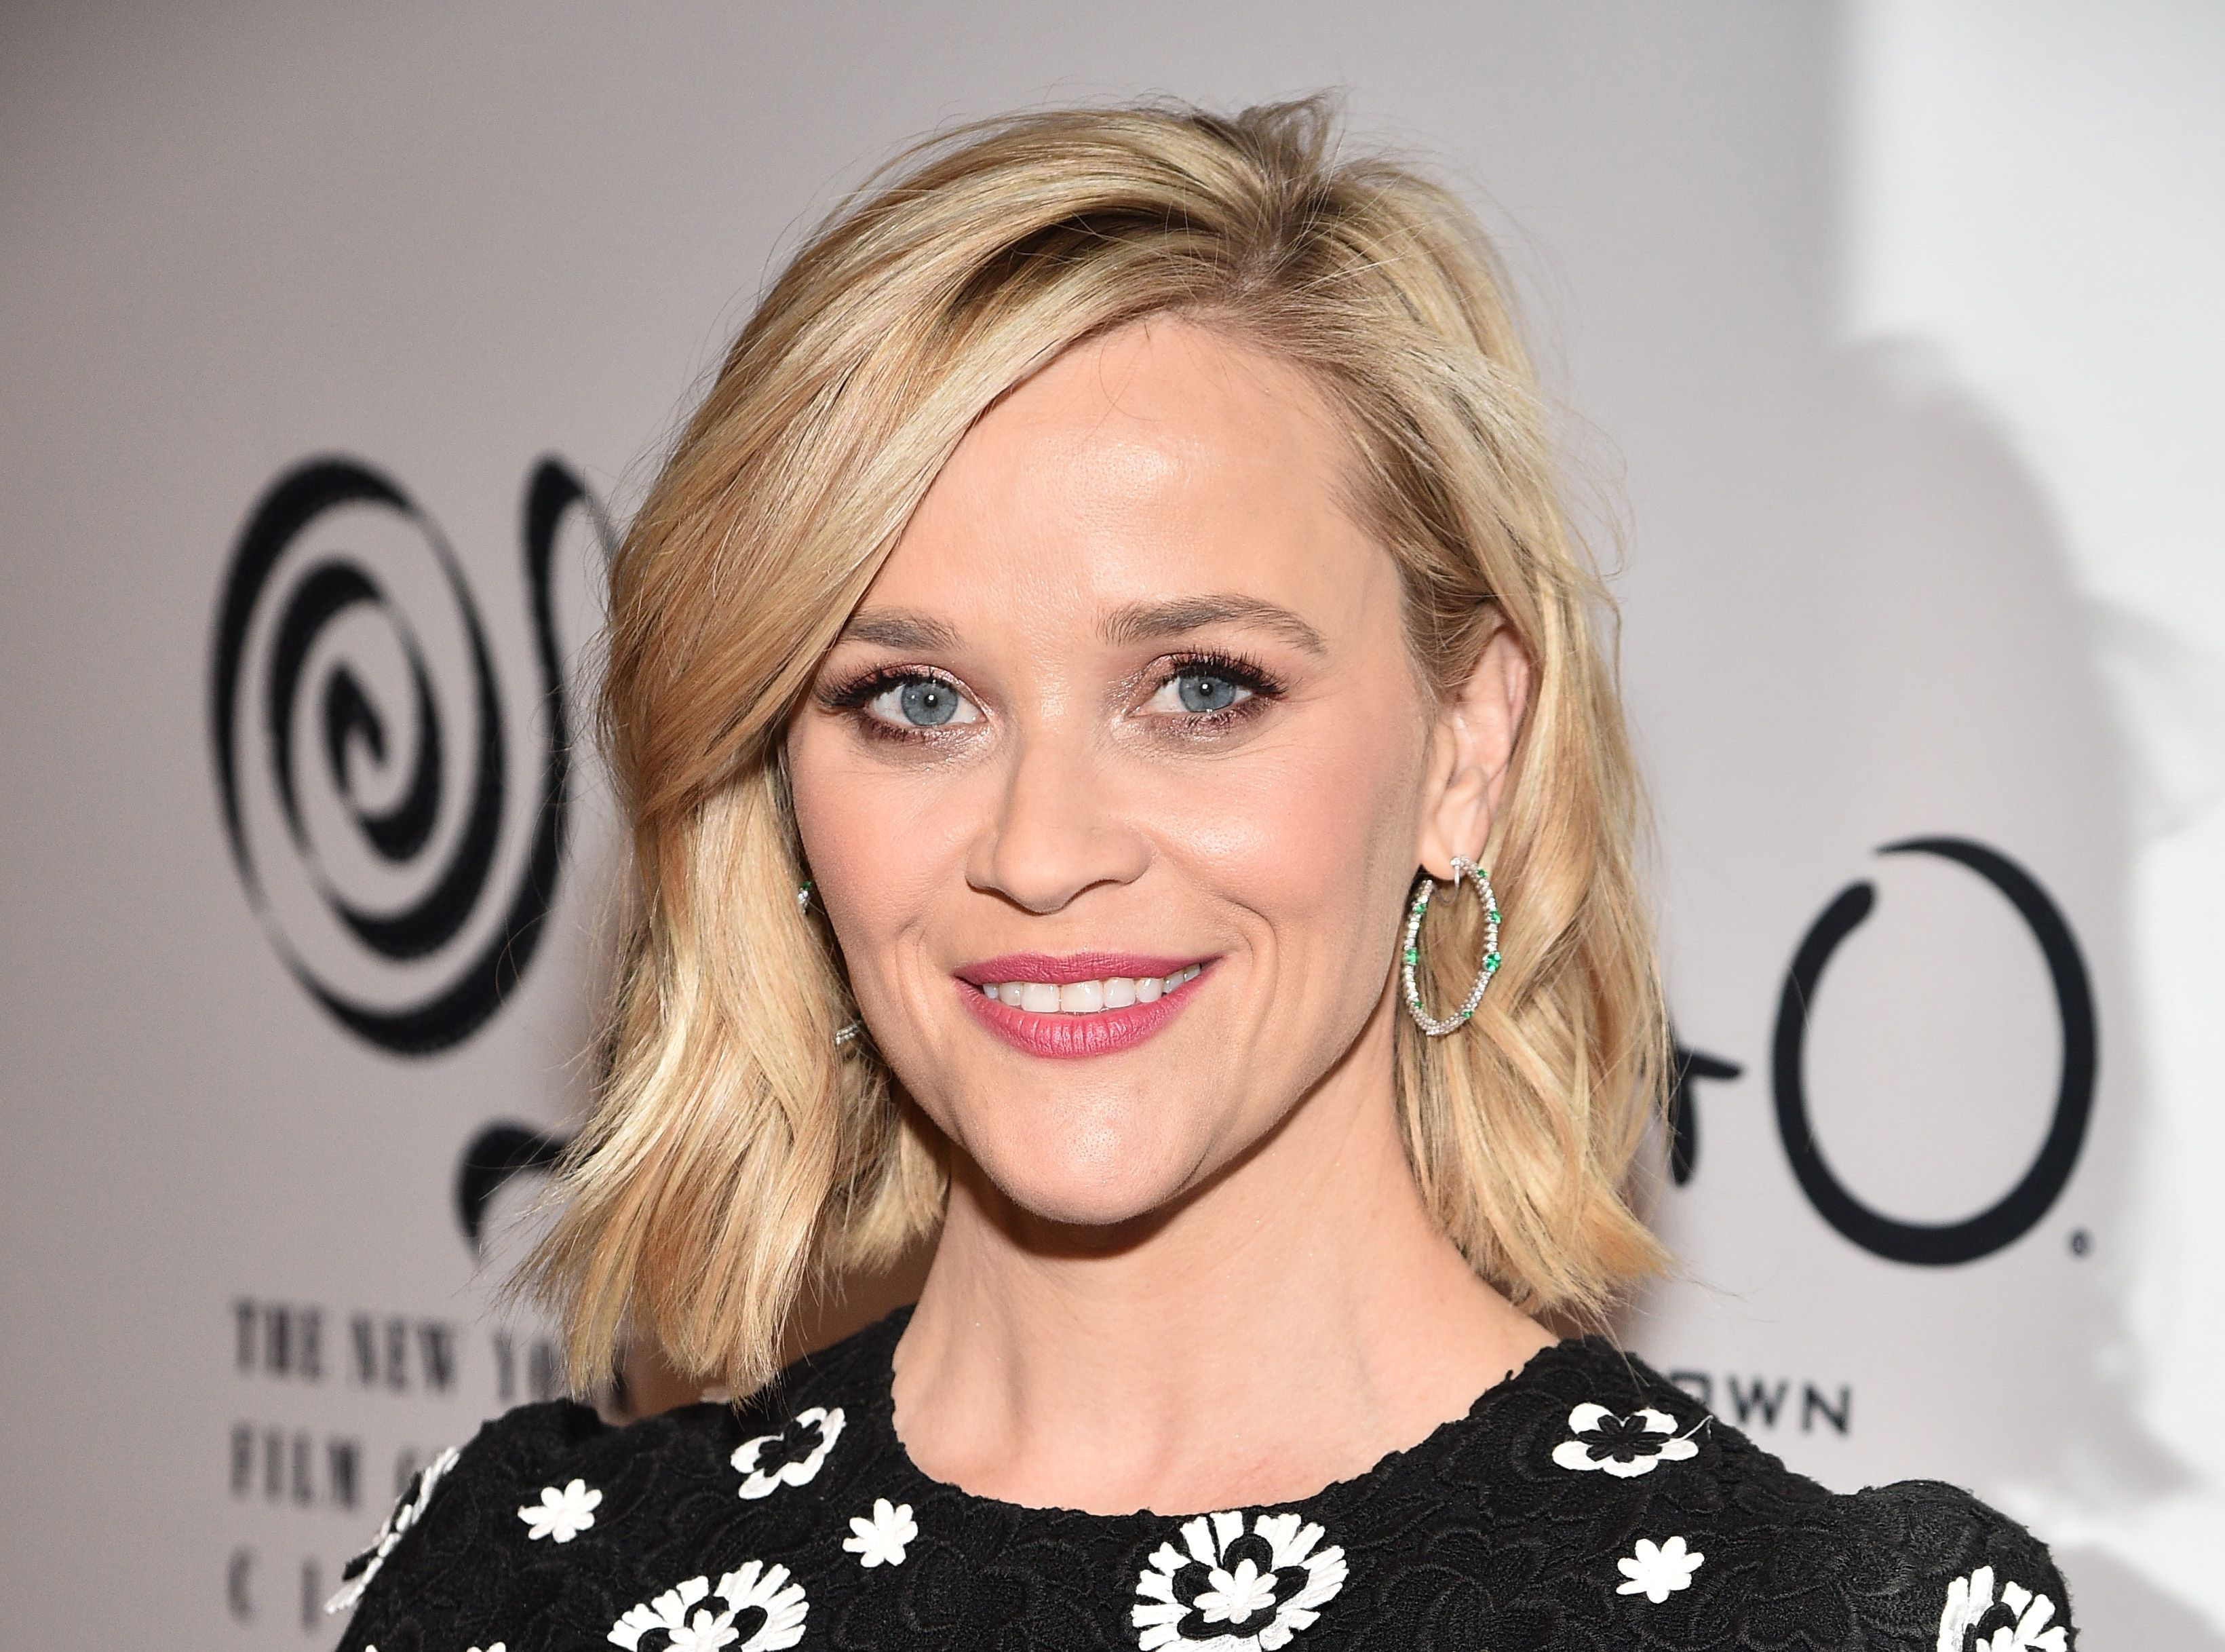 If she hadn't become an actress, Reese Witherspoon would have focused on her writing career.